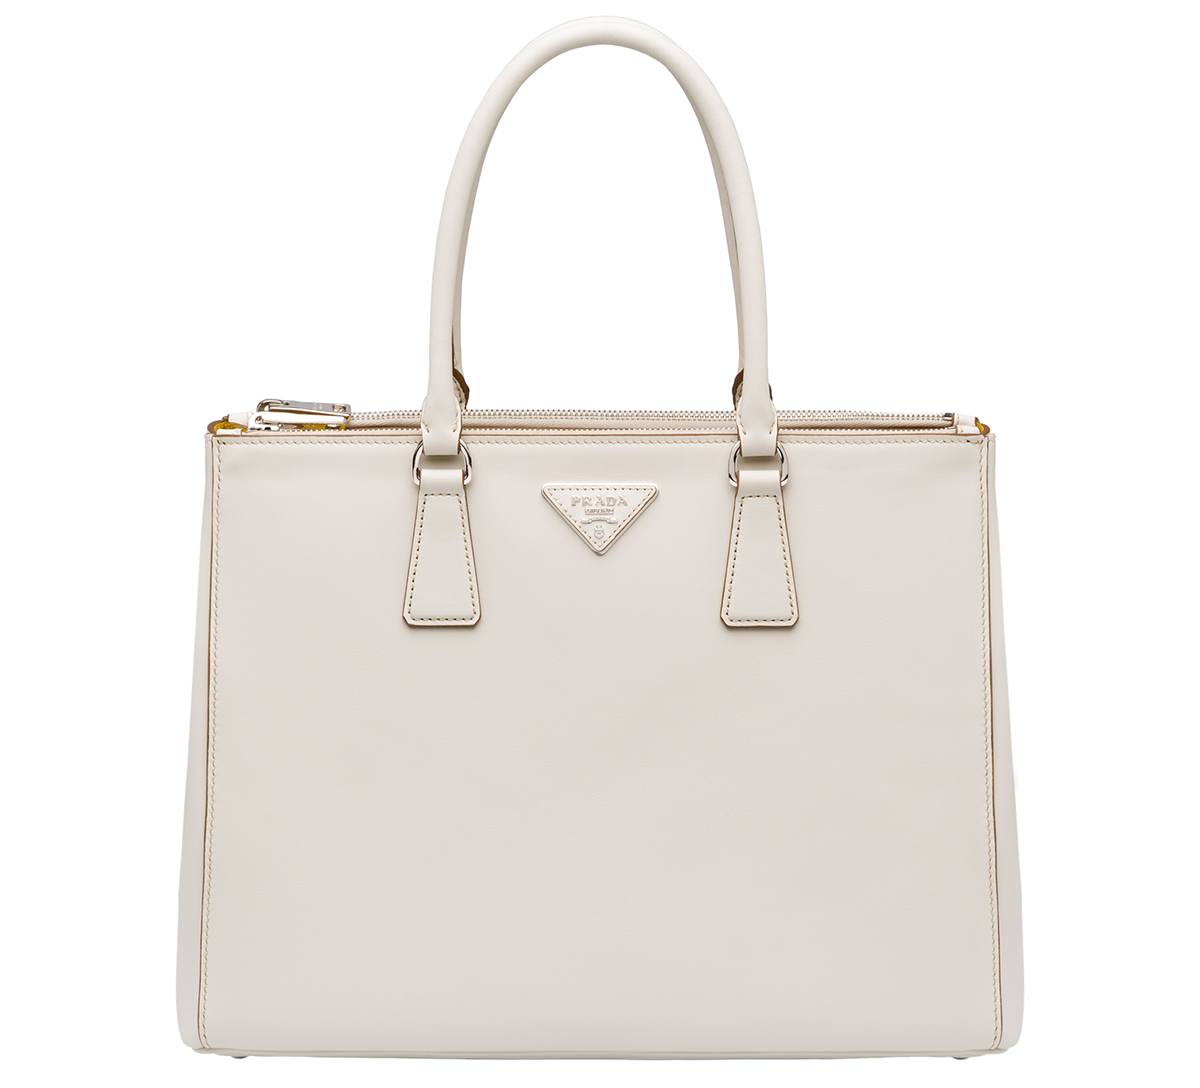 prada canvas bag price - The New Prada Galleria Bag in City Calf - PurseBlog